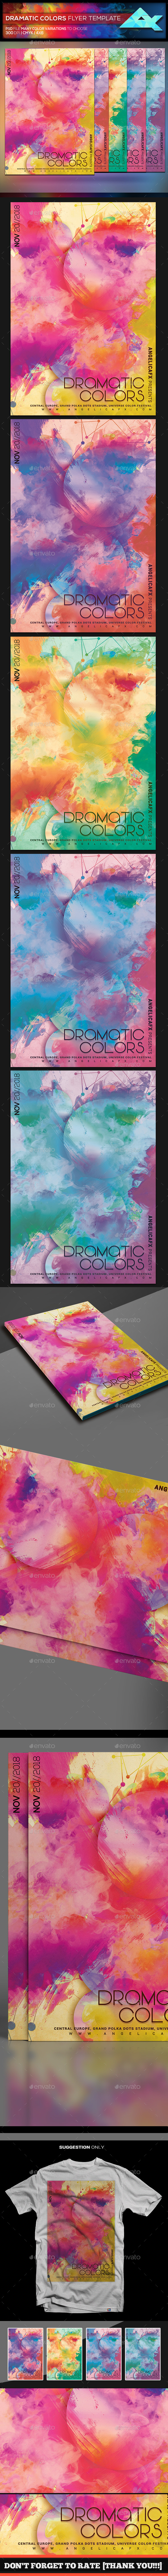 Dramatic Colors Flyer Template - Events Flyers